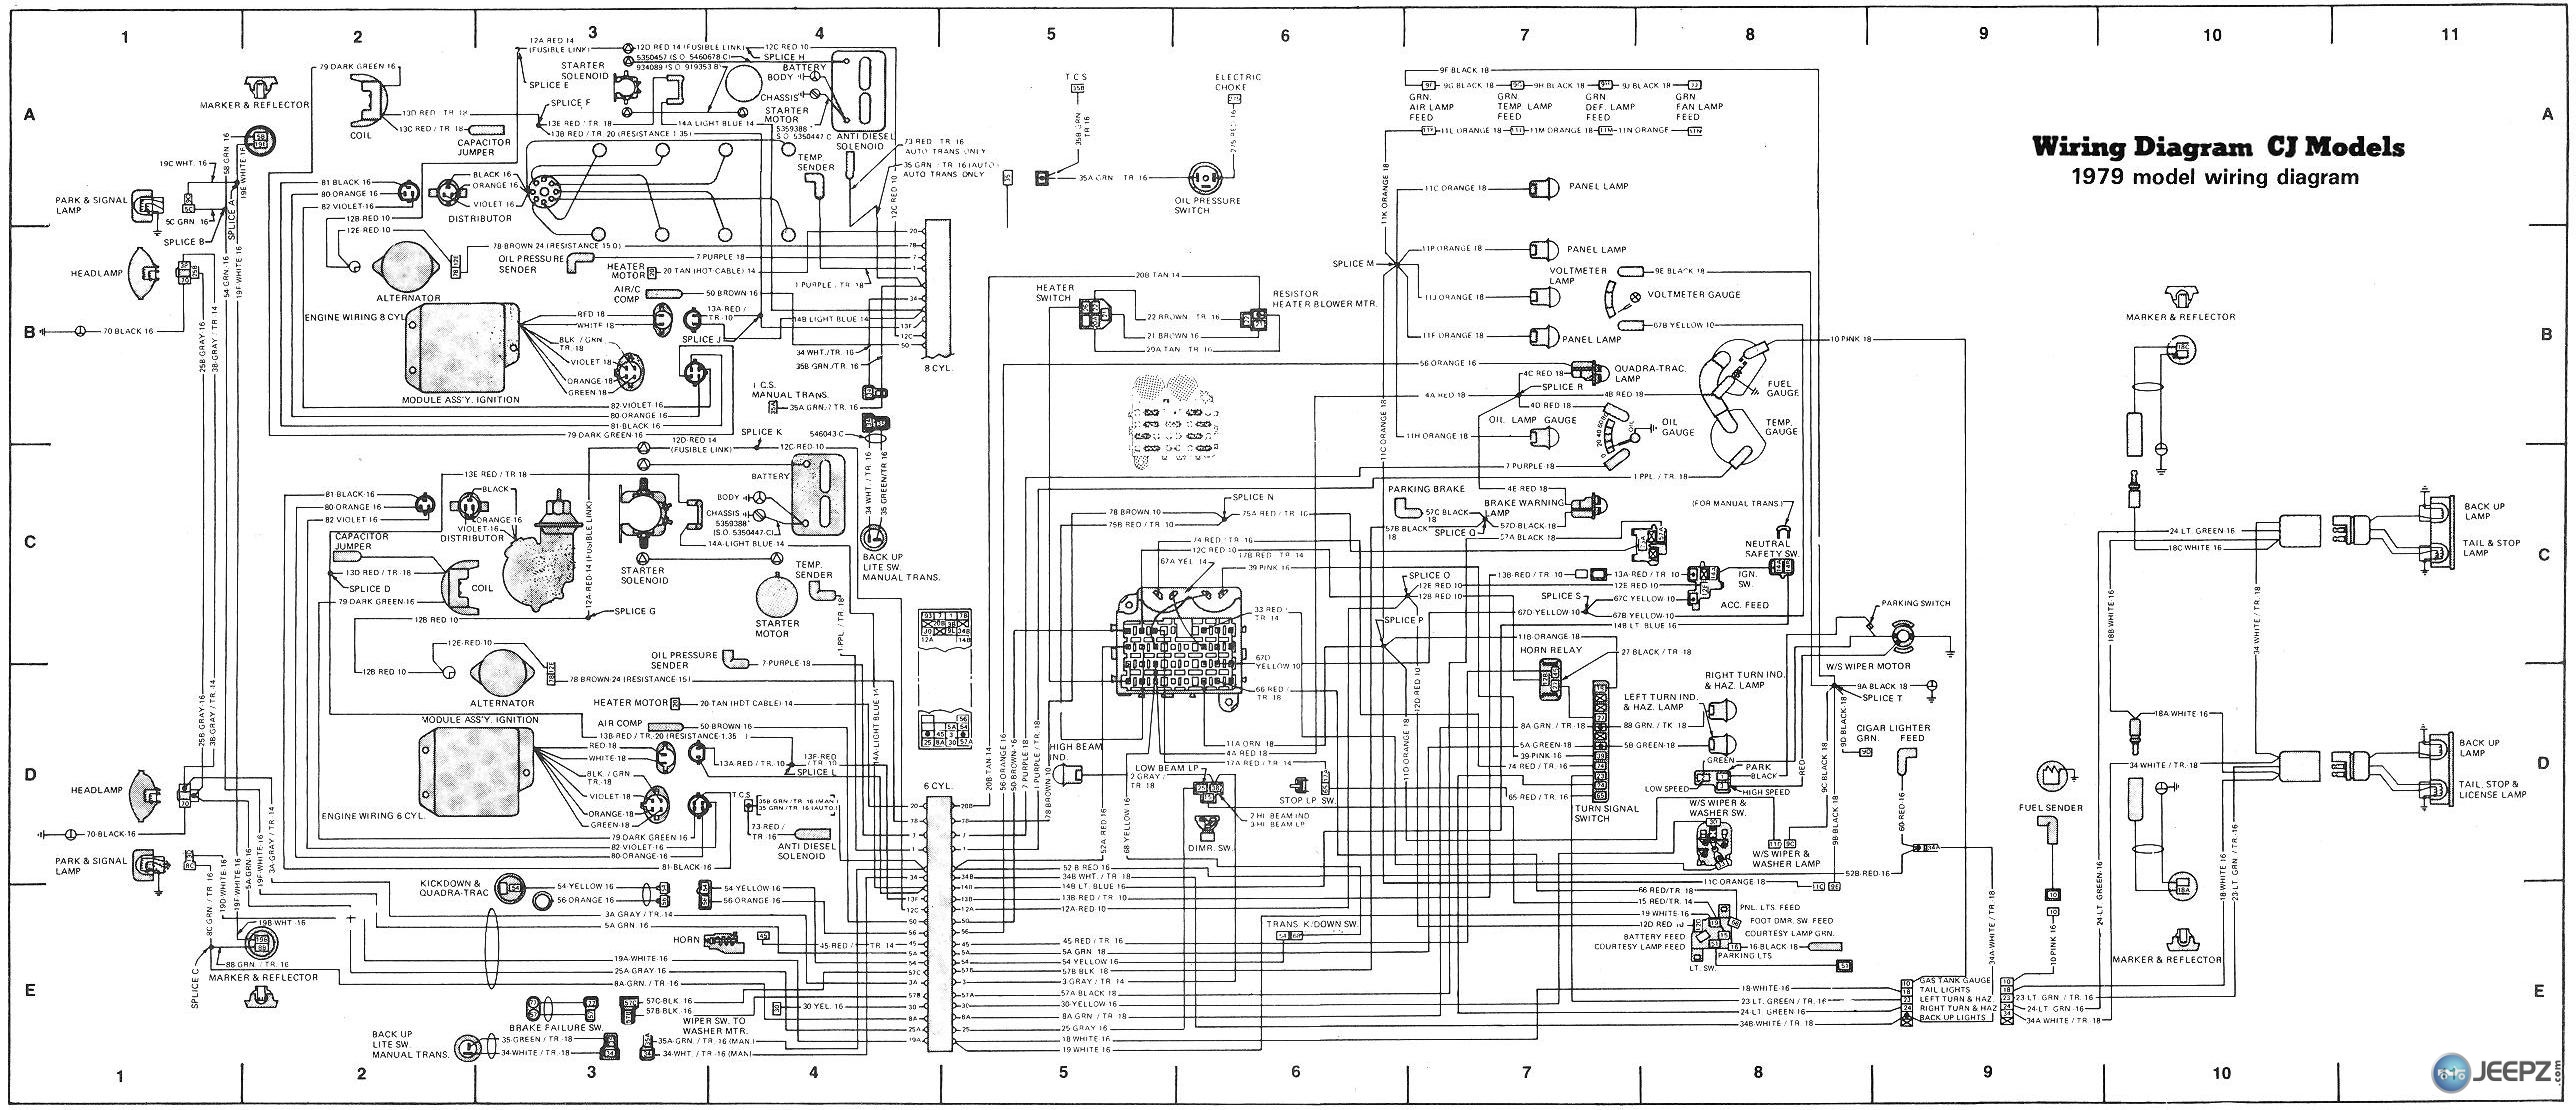 jeep cj5 wiring kit wiring diagram schema  jeep cj5 wiring kit wiring diagram data schema jeep cj5 wiring diagram wiring diagram data jeep